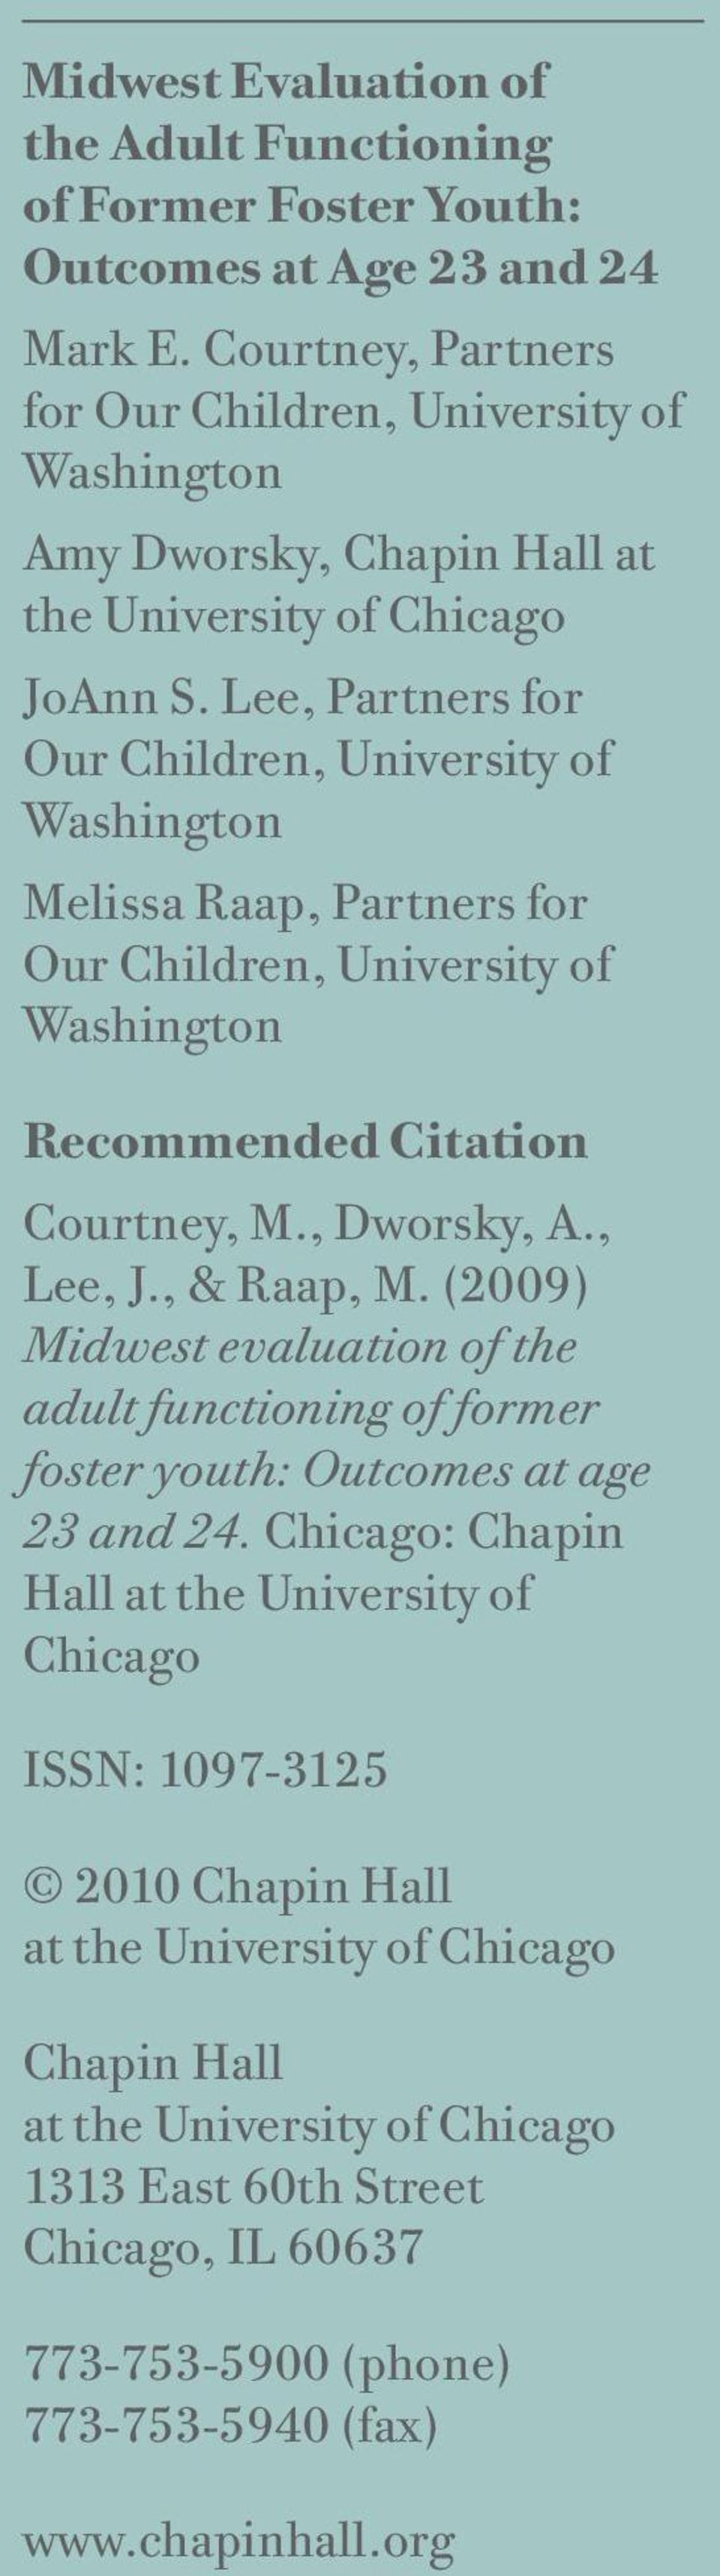 Lee, Partners for Our Children, University of Washington Melissa Raap, Partners for Our Children, University of Washington Recommended Citation Courtney, M., Dworsky, A., Lee, J., & Raap, M.